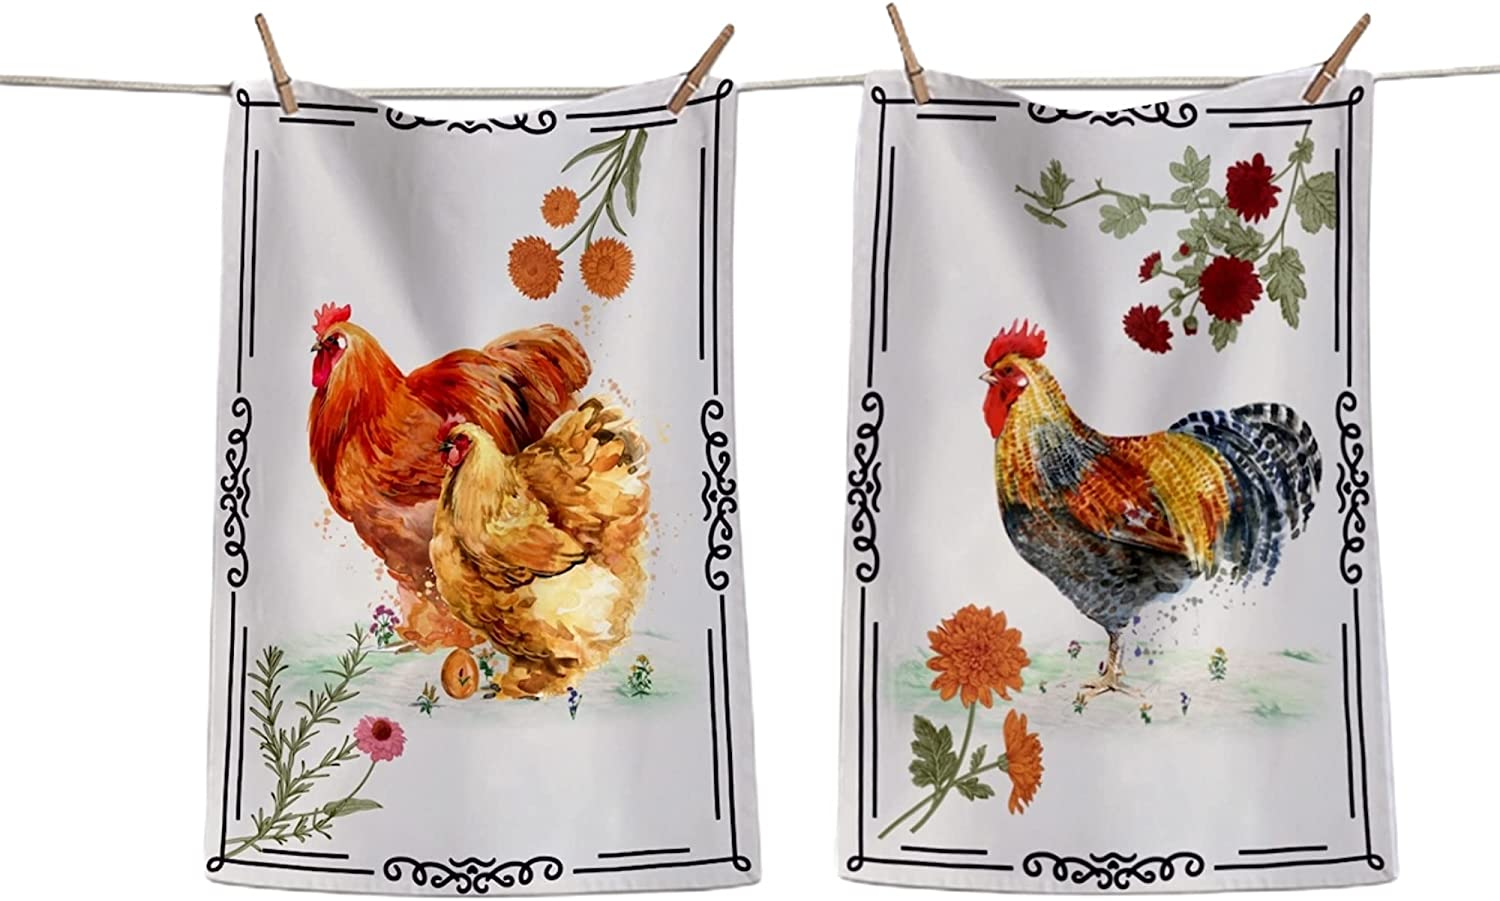 Shes Chic Rooster Chicken Kitchen Towels - 100% Cotton Farmhouse Set of 2 Multi-Purpose Feedsack Dish Towel for Drying   Tea Towels   Bar Towels 26 Inch by 18 Inch with Hanging Loop